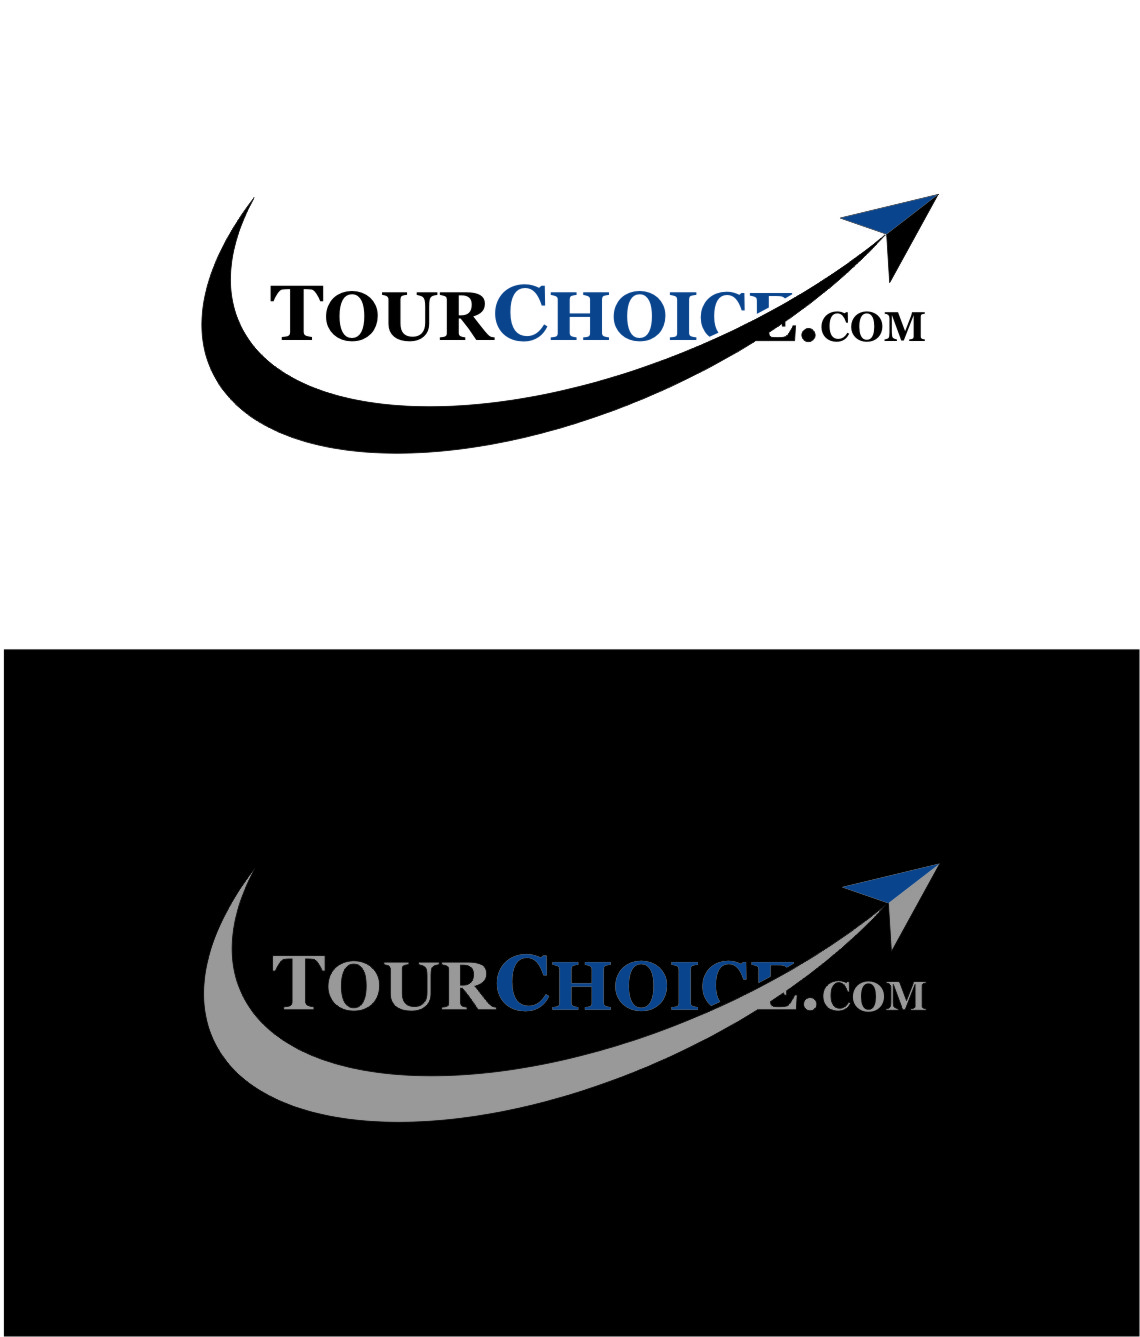 Logo Design by Ngepet_art - Entry No. 74 in the Logo Design Contest www.TourChoice.com Logo Design.